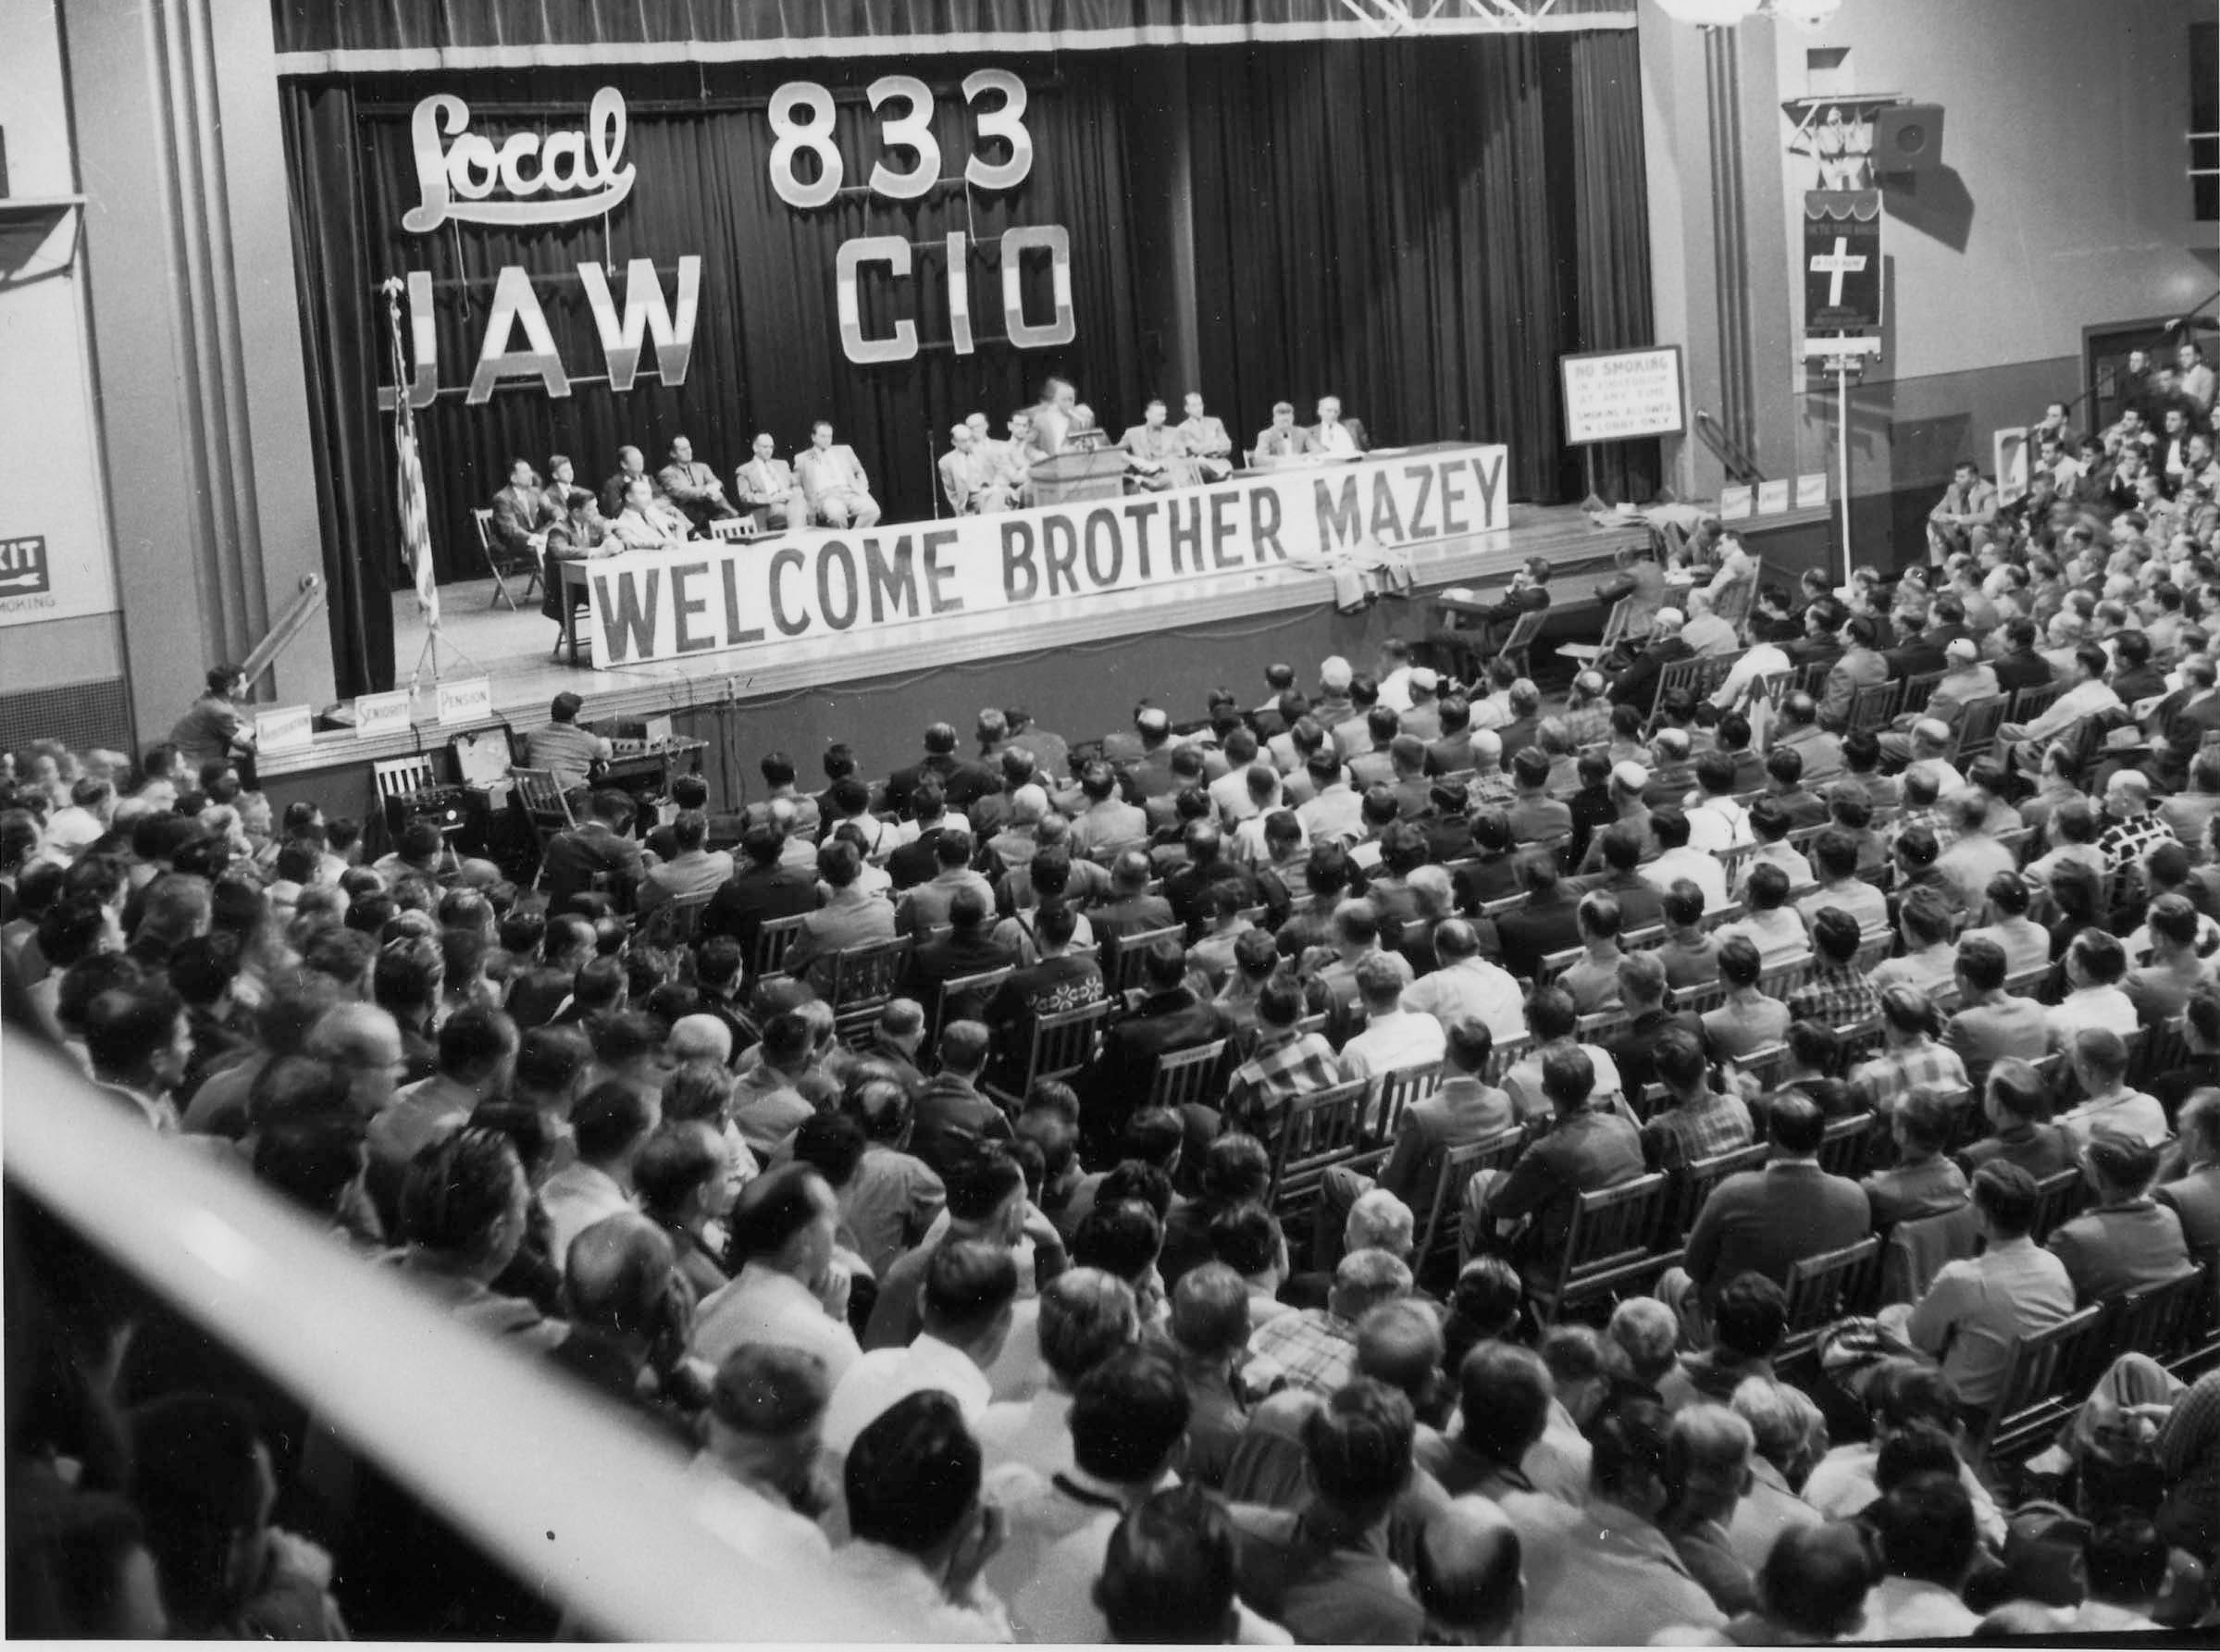 Emil  Mazy, secretary-treasurer of the UAW-CIO was the principal speaker at a meeting of Local 833 at the Sheboygan Armory Wednesday evening November 17, 1954.  The view is towards the stage while  Allan Graskamp, president of Local 833 was addressing union members.